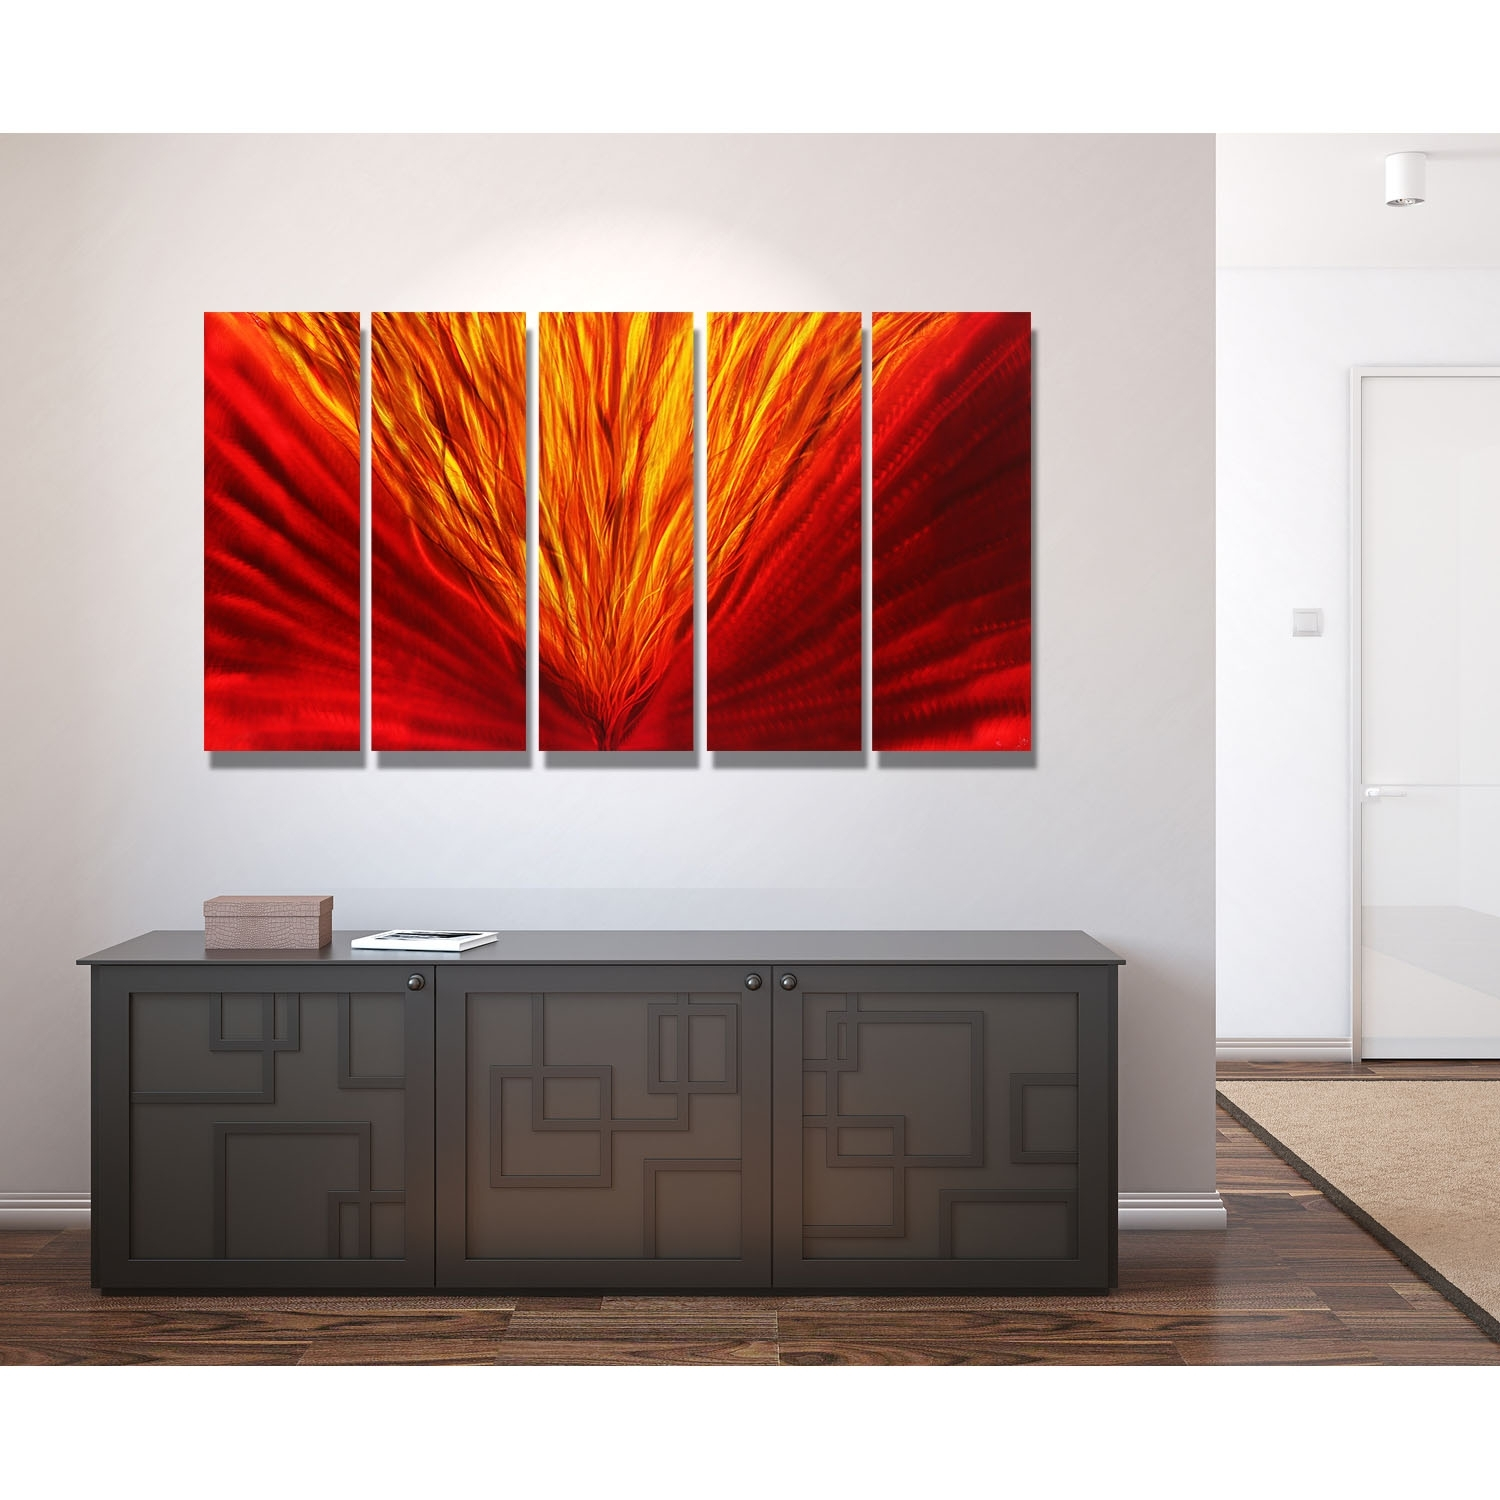 Blaze - Red And Gold Metal Wall Art - 5 Panel Wall Decorjon inside 5 Panel Wall Art (Image 8 of 20)